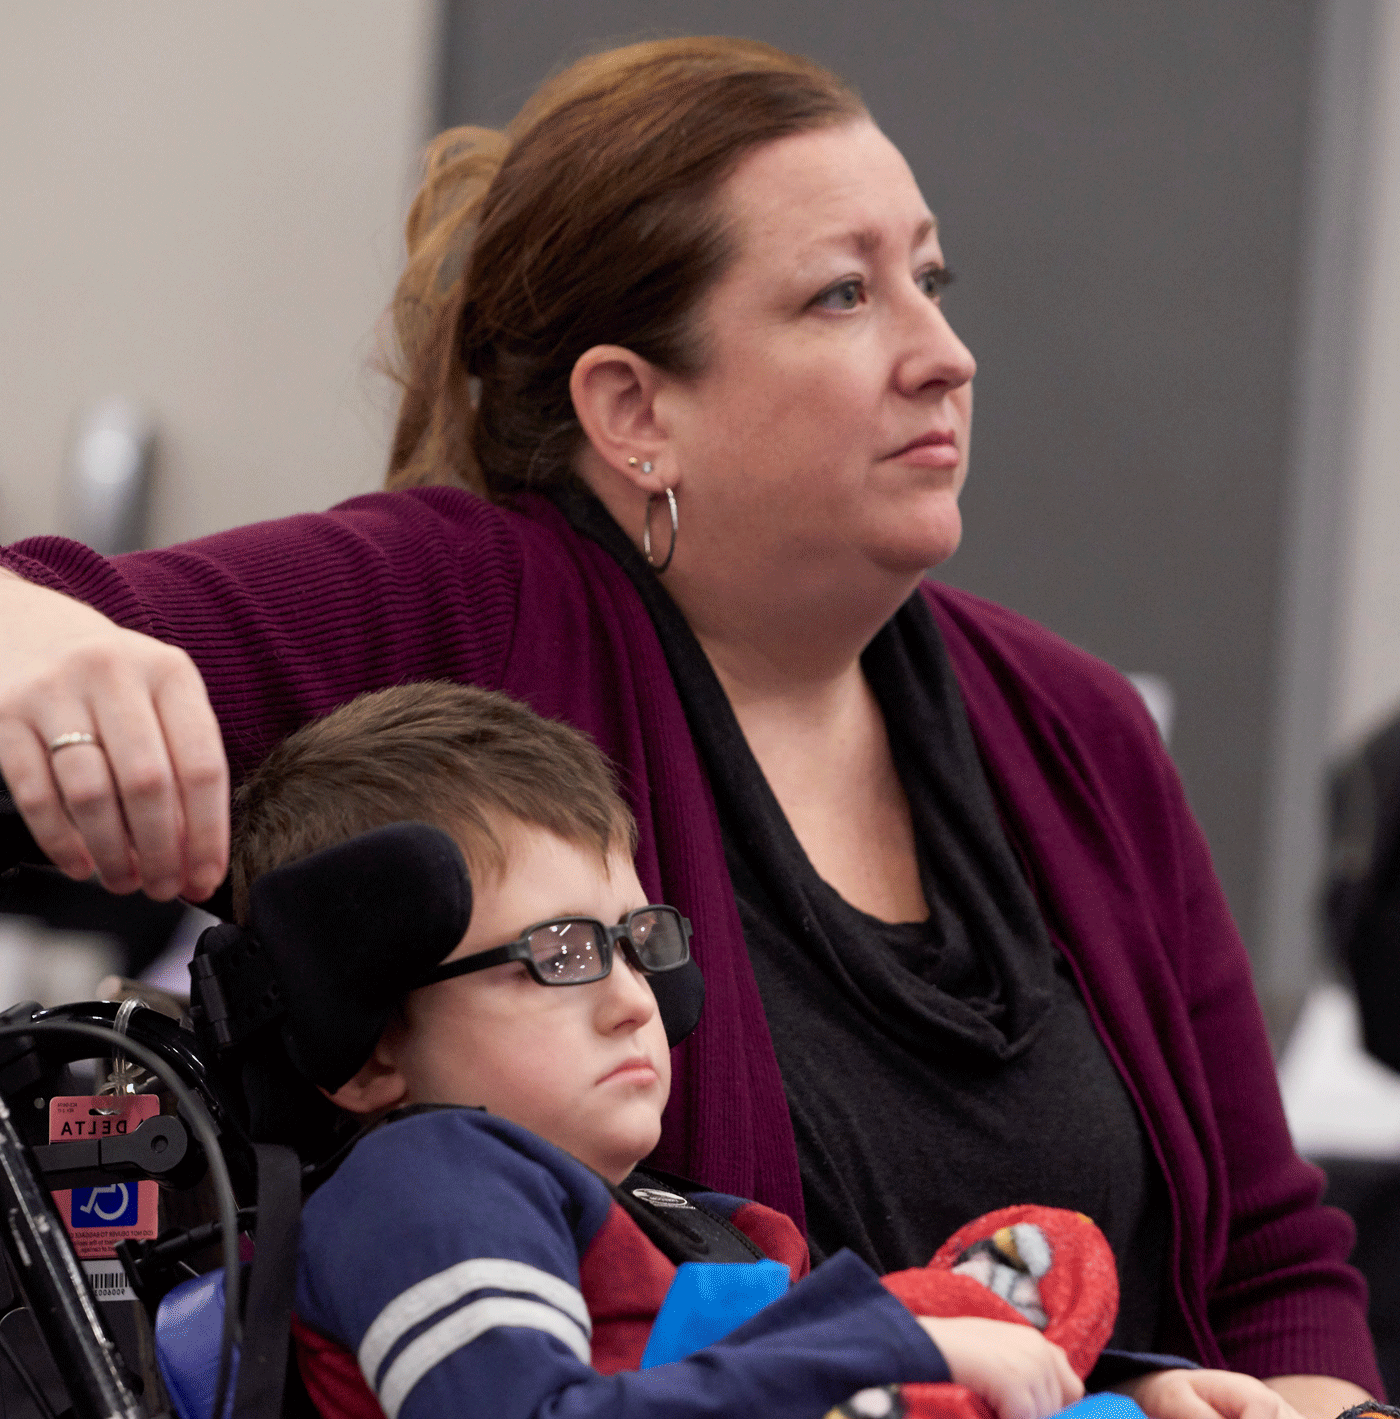 A woman in a maroon sweater leans an arm over her young son's wheelchair, listening intently to someone off camera.